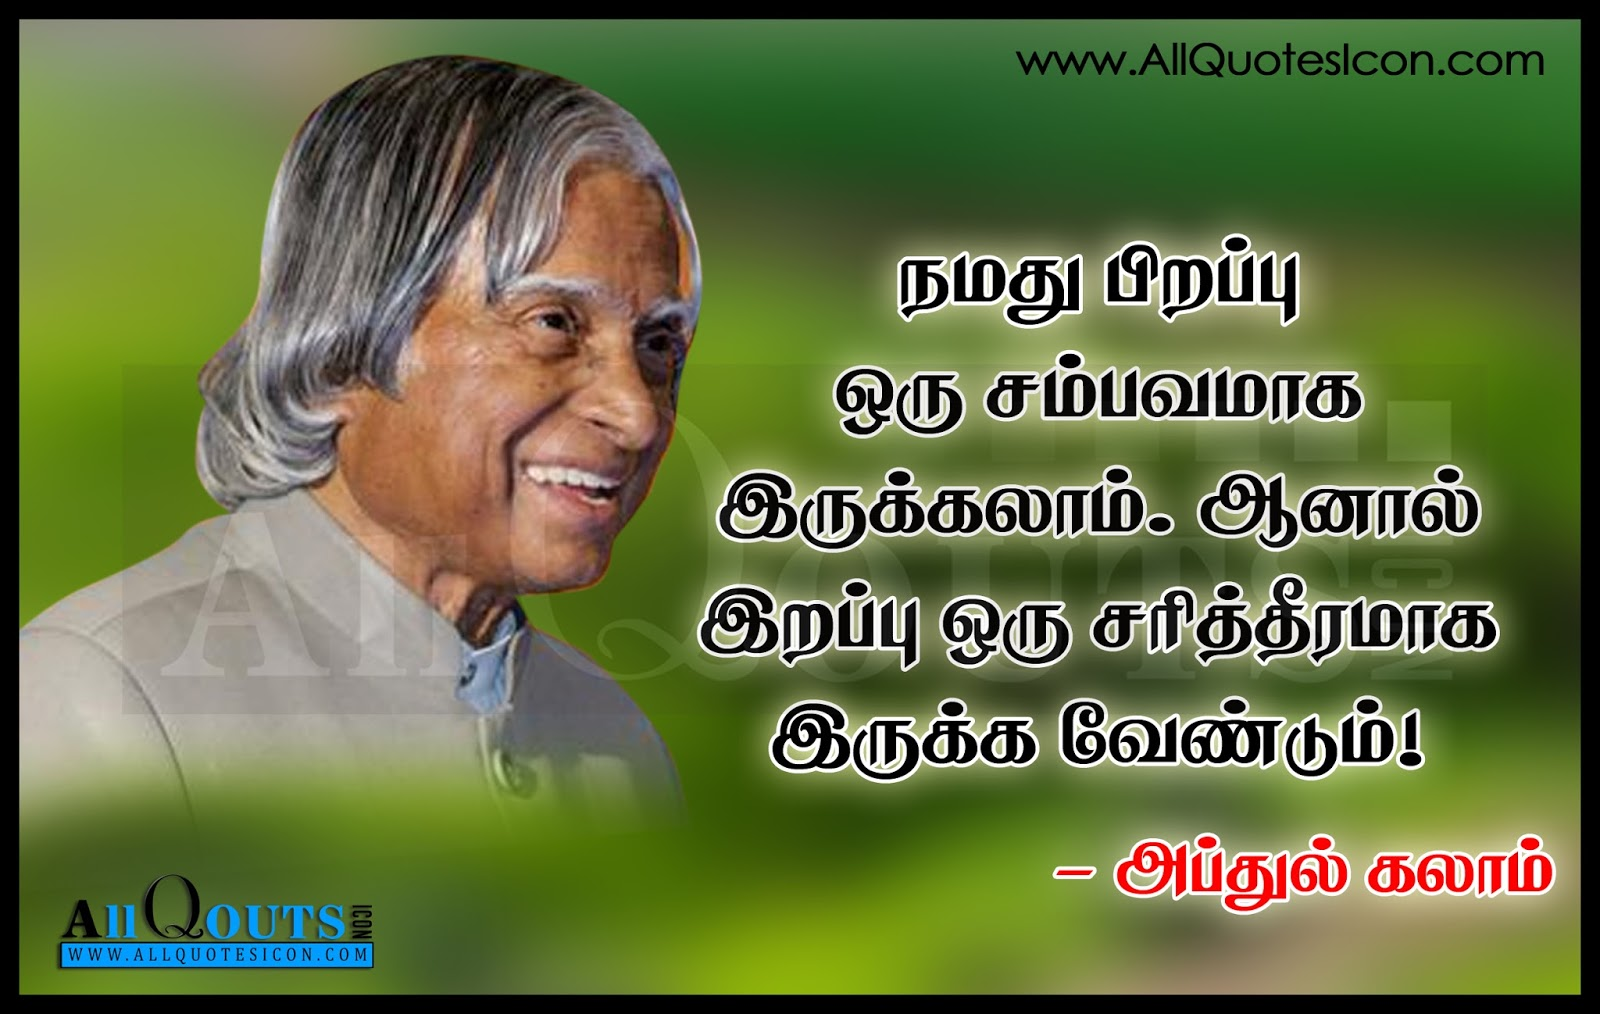 abdul kalam tamil quotes and sayings best inspiration